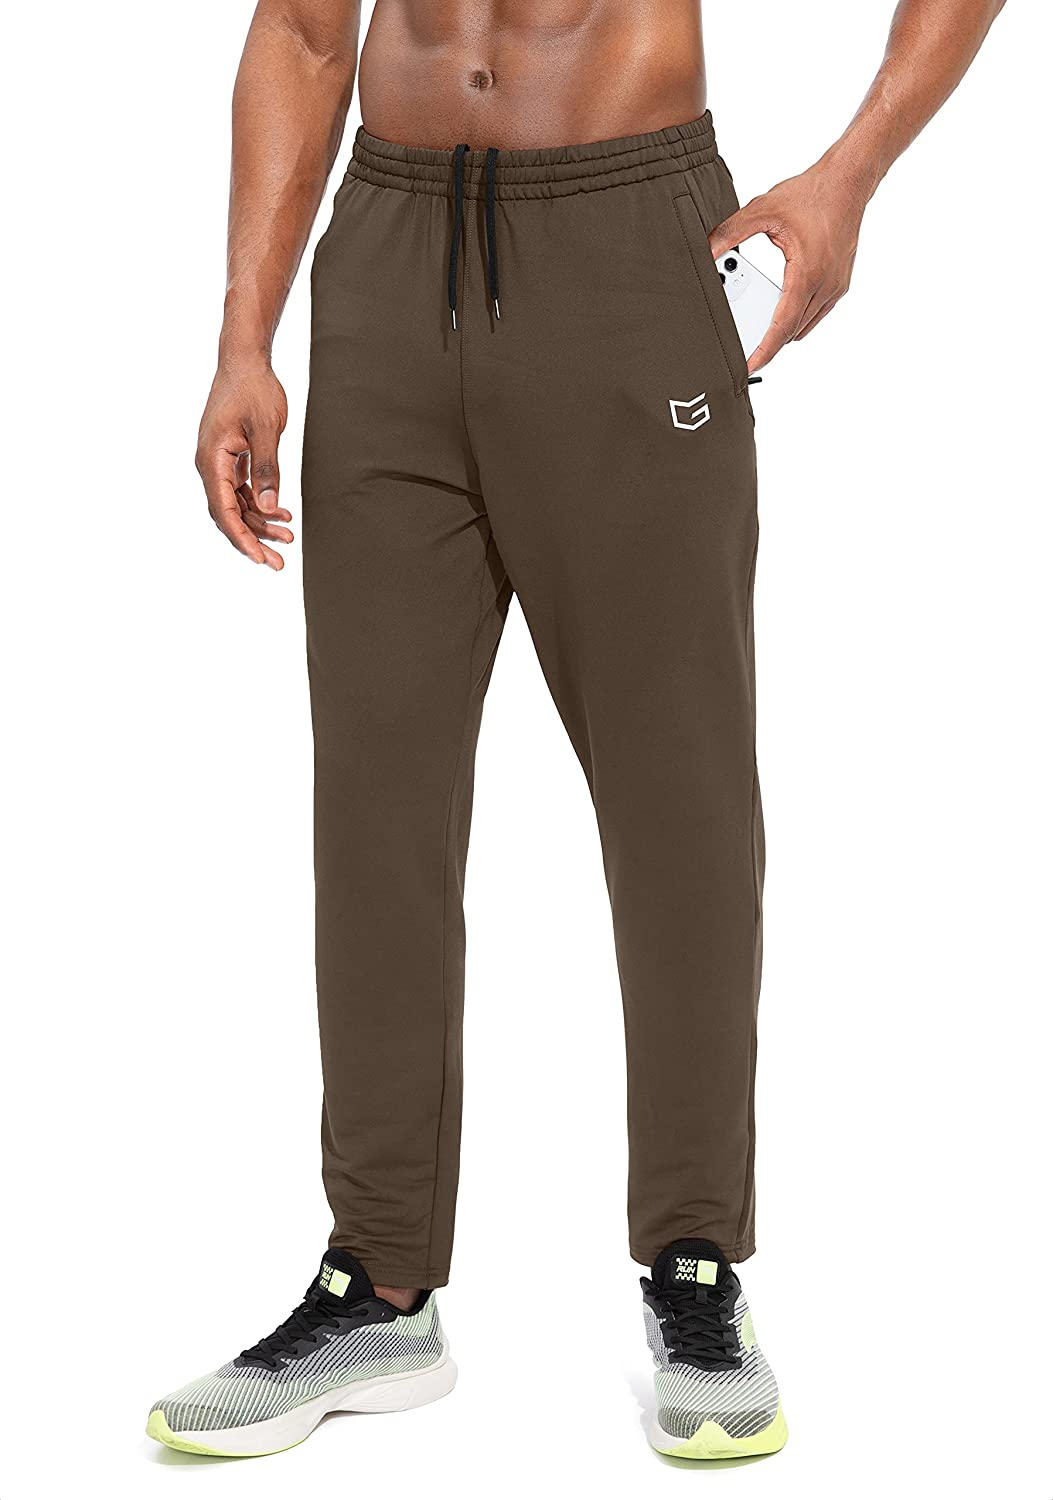 G Gradual Indefinitely Men's Sweatpants with Ath Zipper Track Tapered Pockets Over item handling